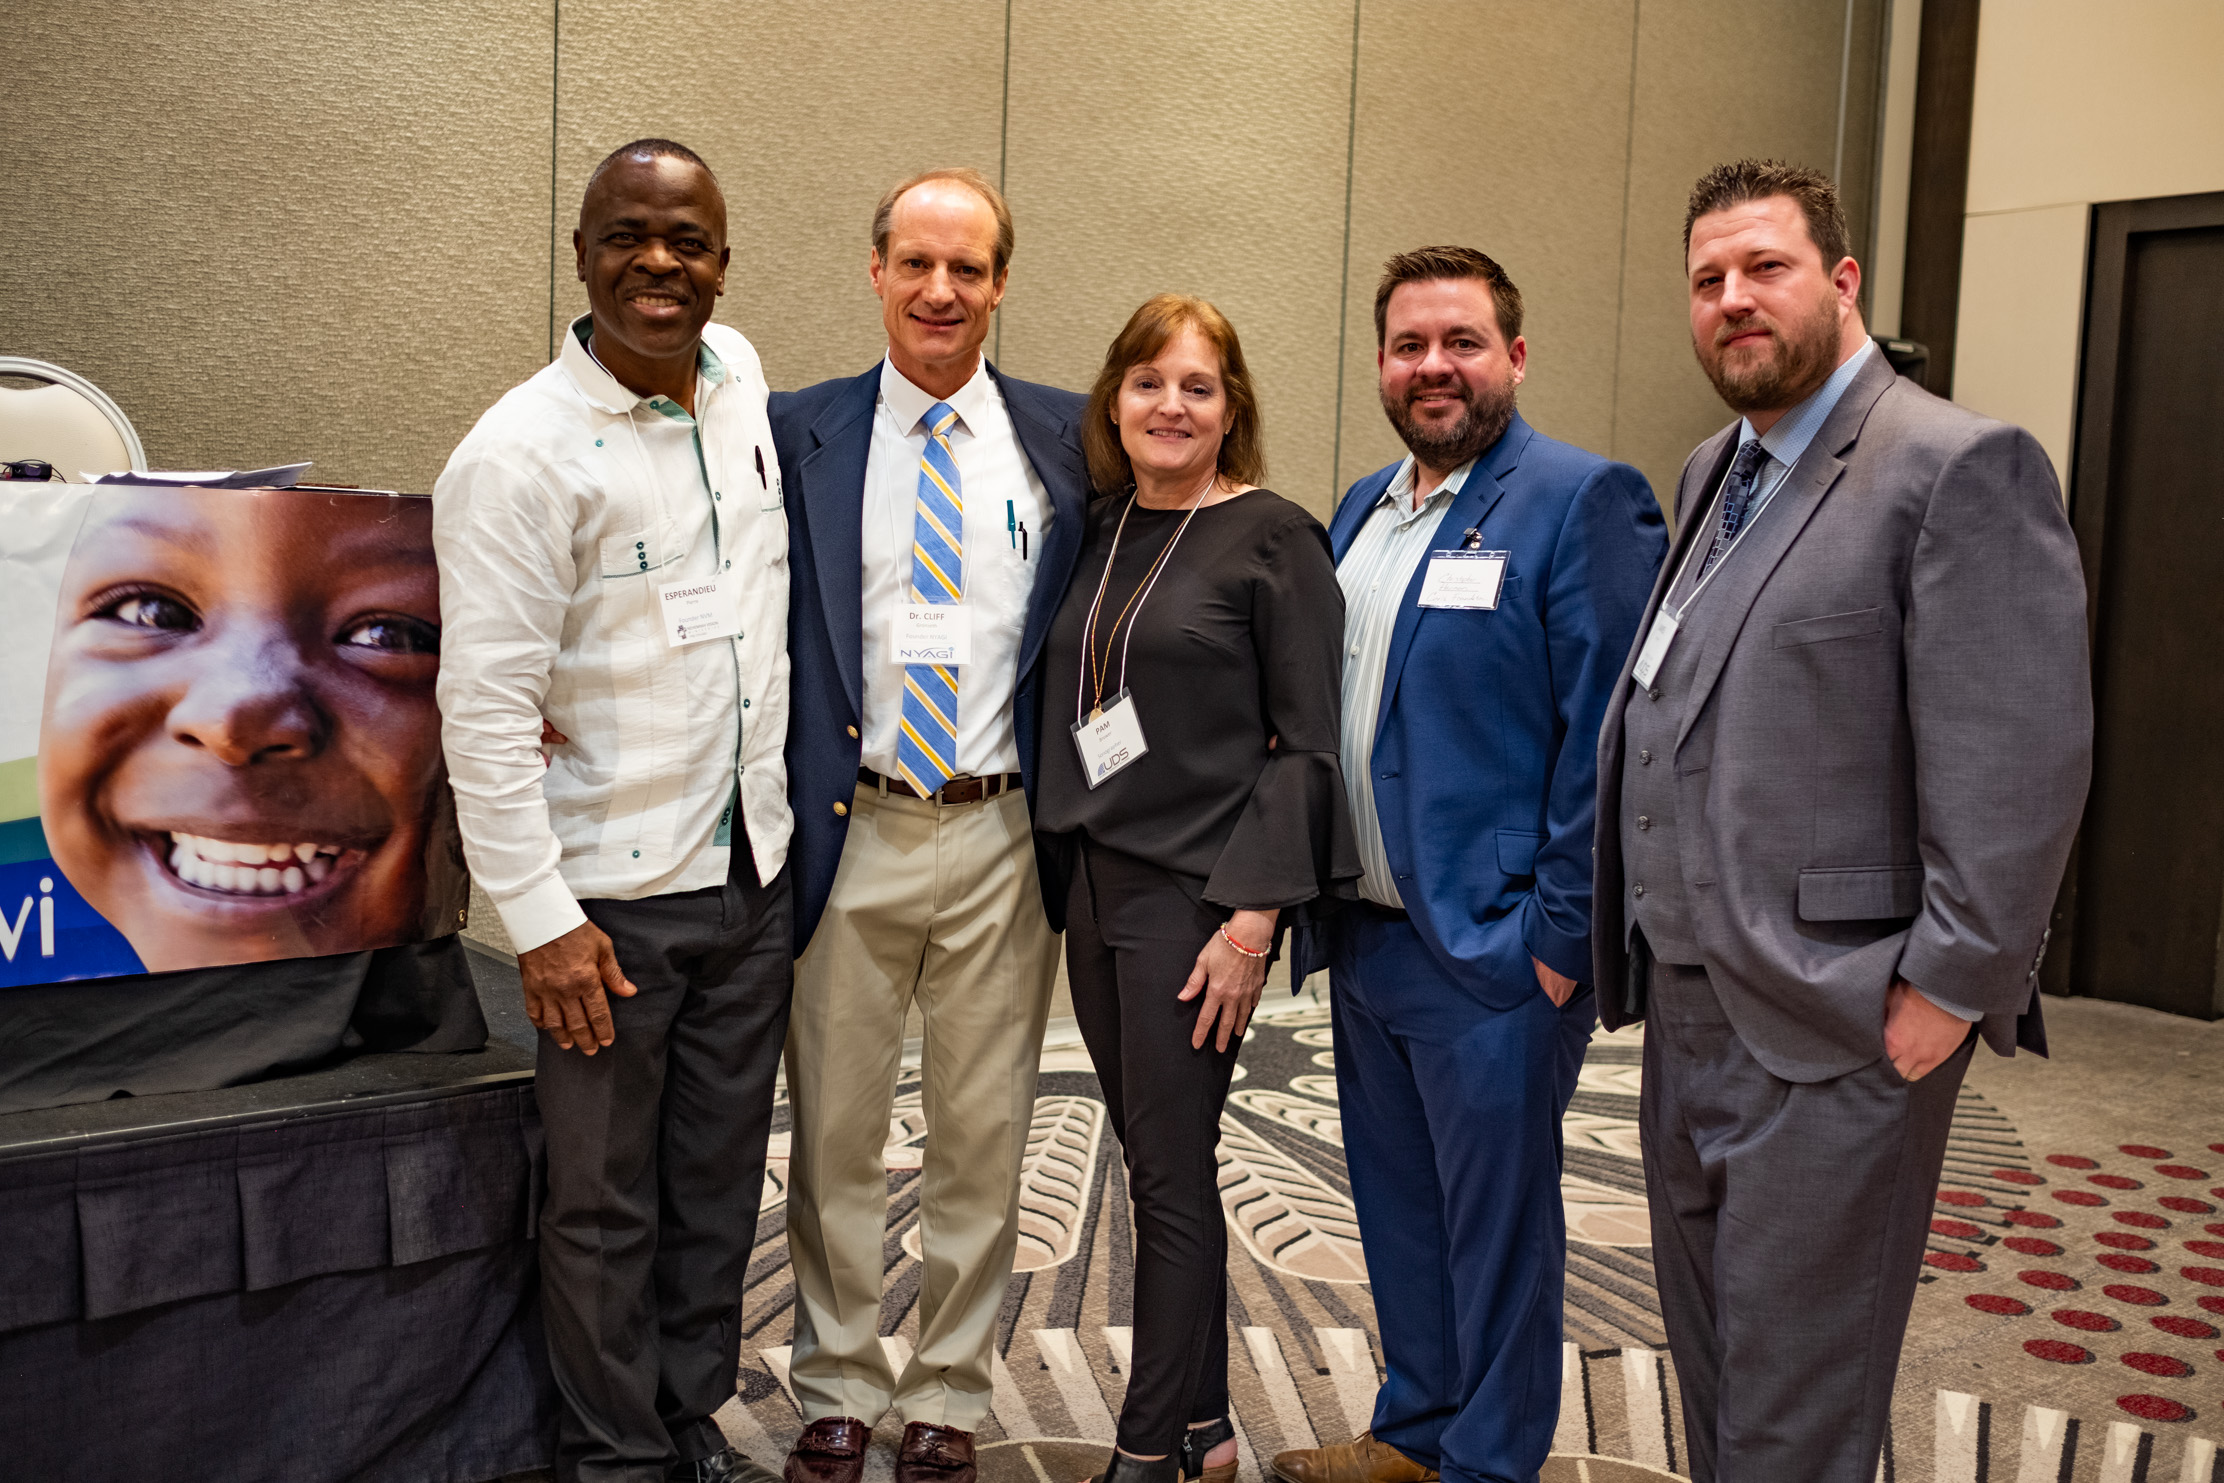 Left to right: Pierre Esperandieu, Dr. Cliff Gronseth (founder, NYAGI), Pamela Brower (President, International Foundation for Sonography Education and Research), Christopher Harmon (Vice President, Caris Foundation), and James Warren (Director of Sales, UDS).